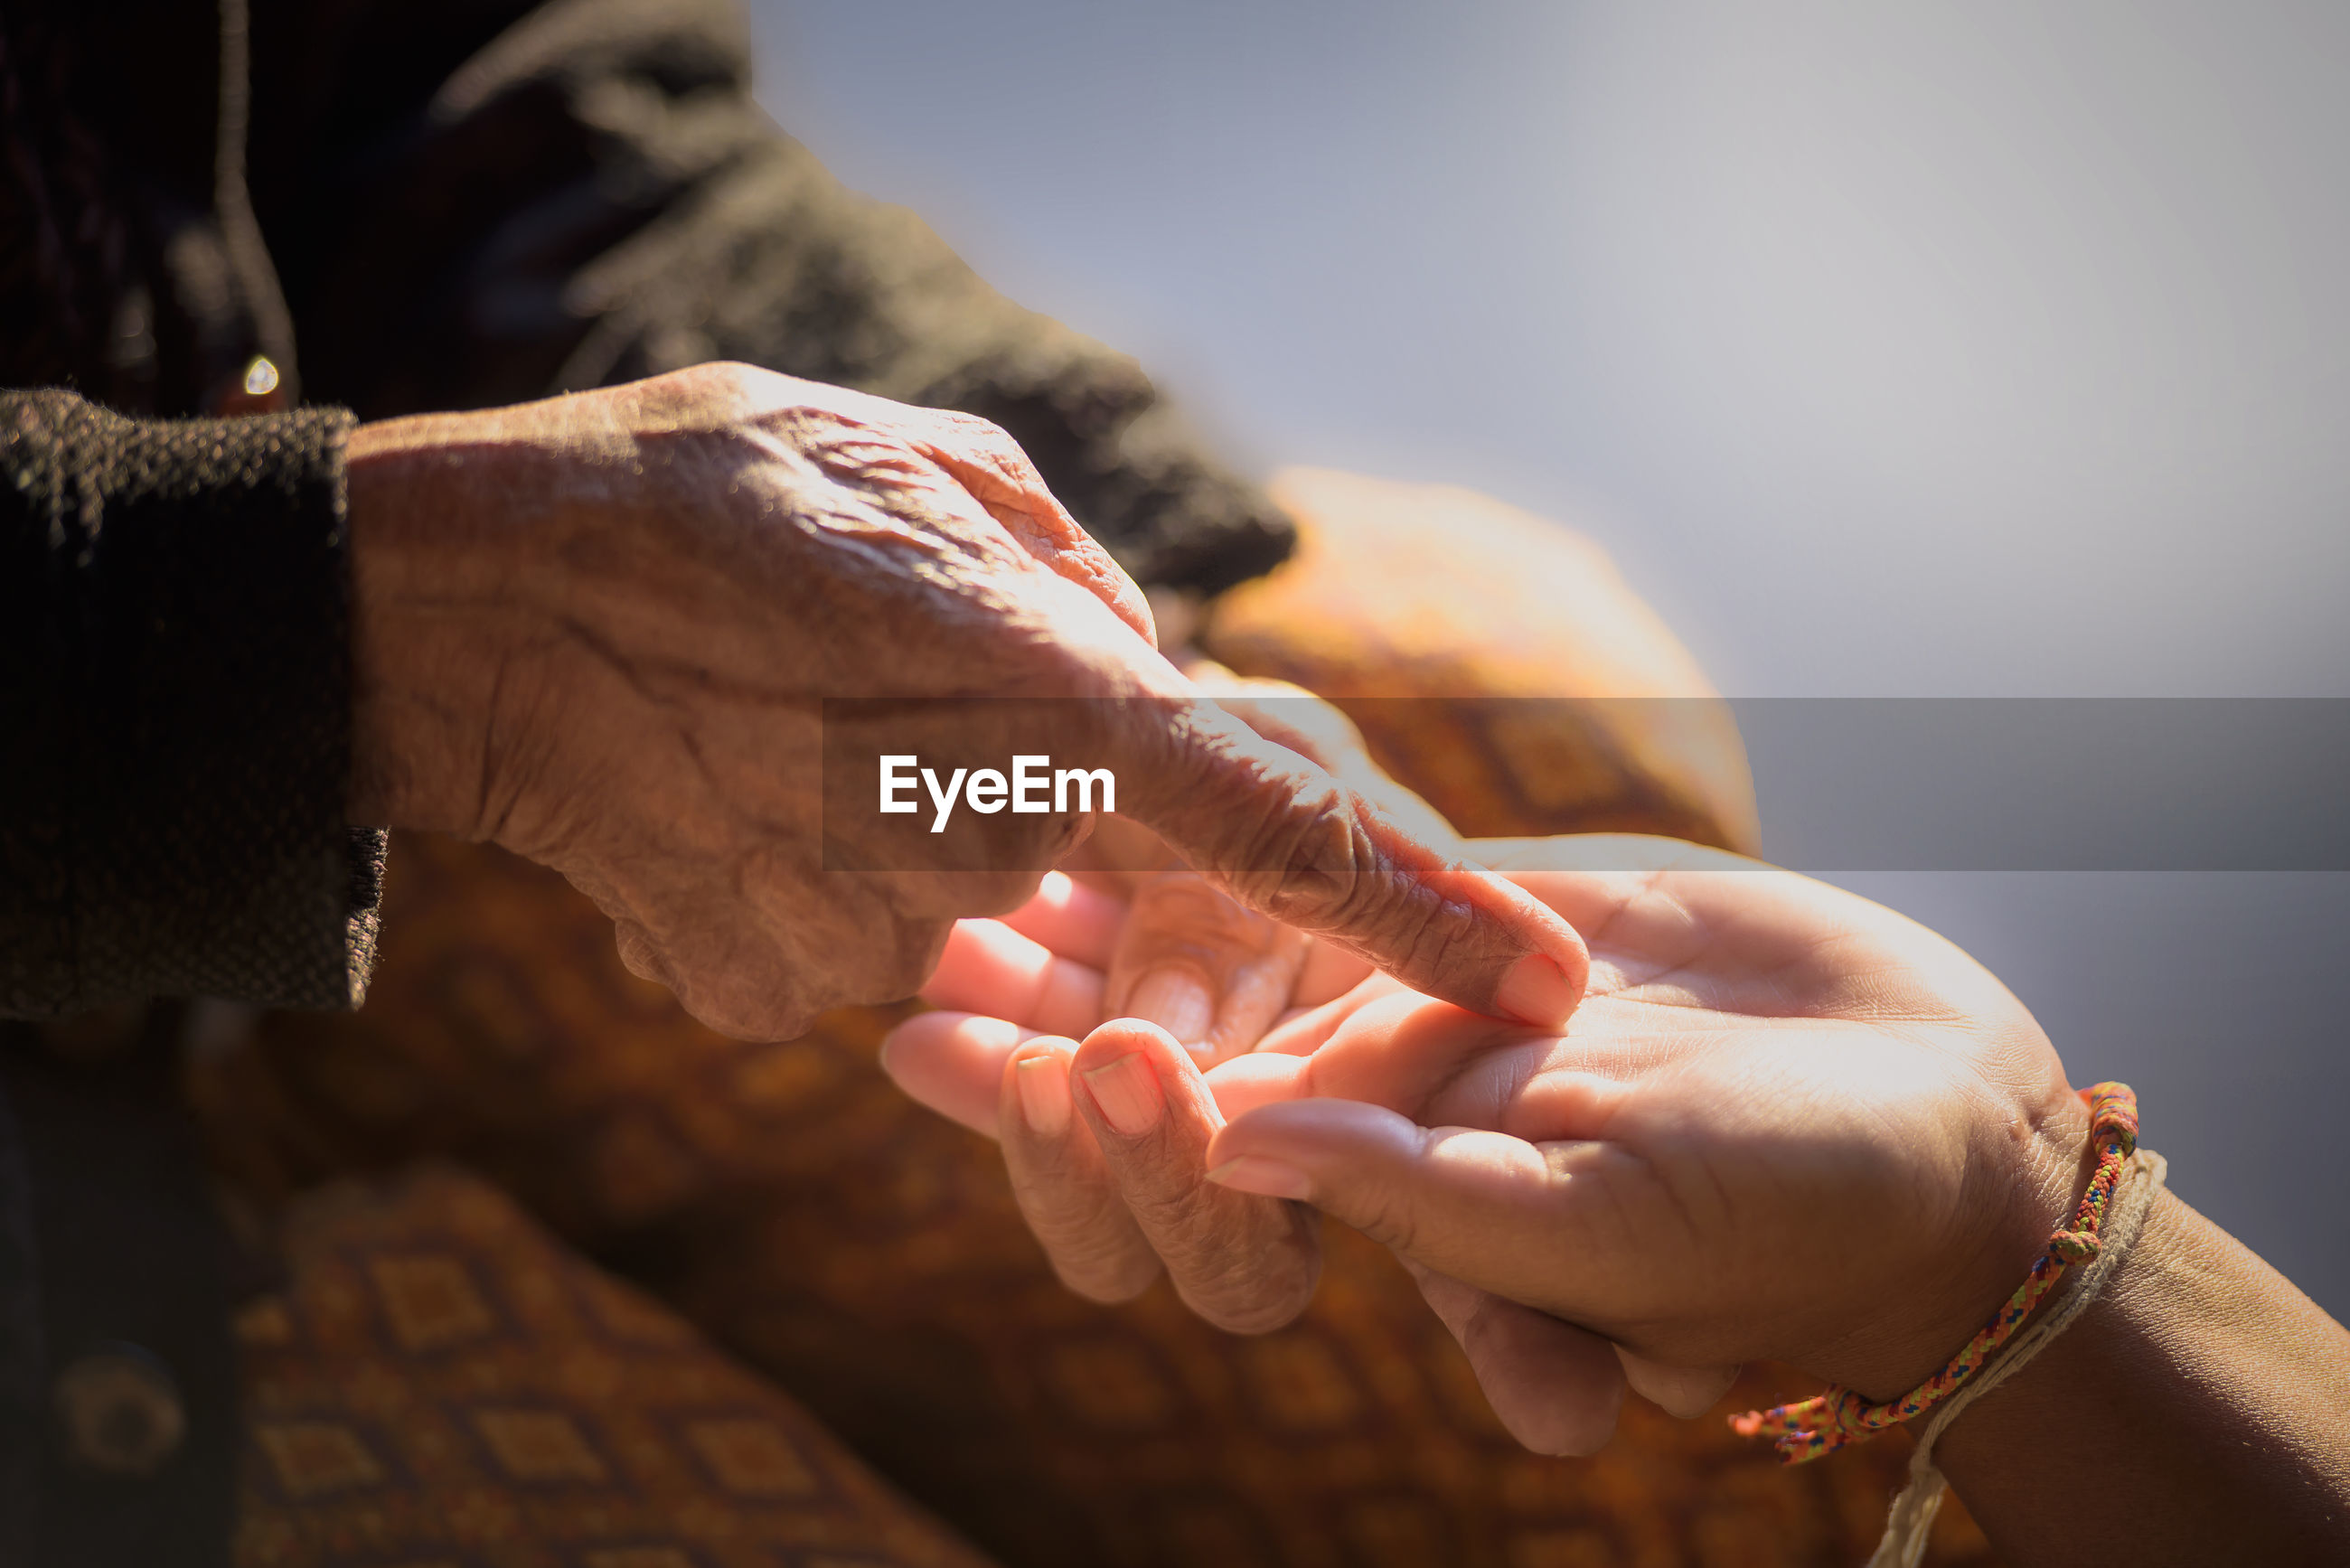 The hands of old women and young women, taking care of the elderly closely.